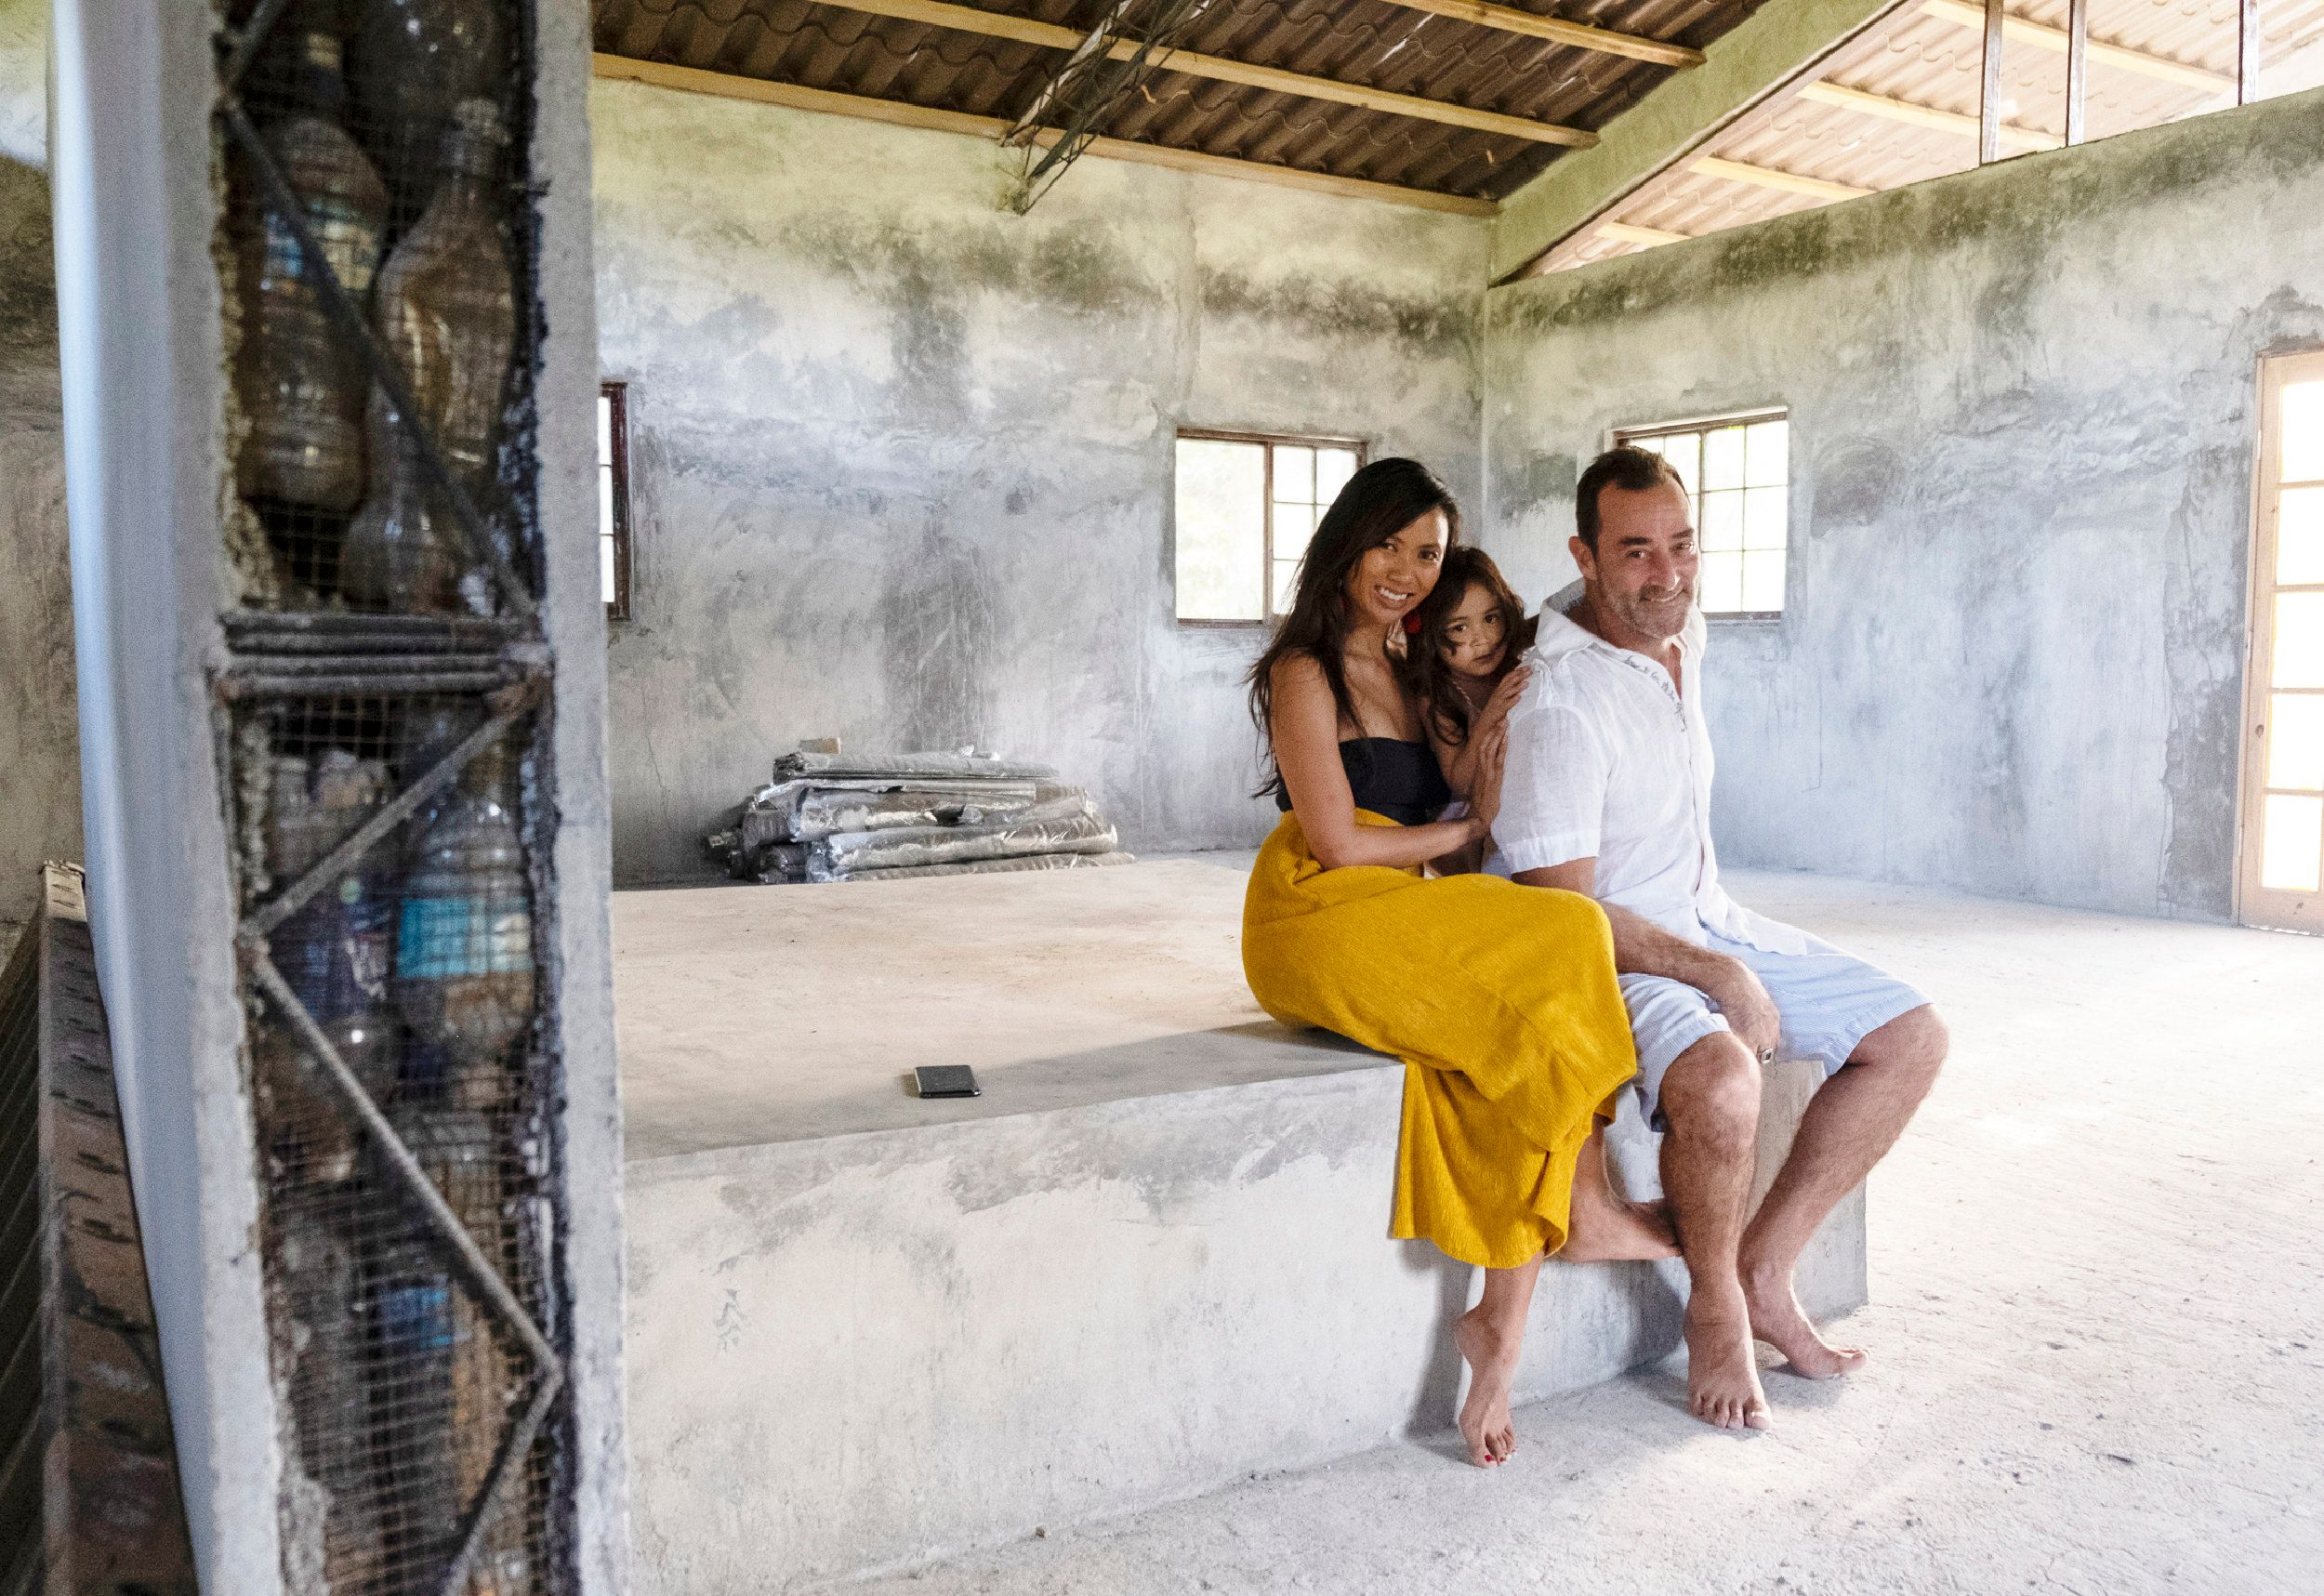 Jeff Catalano, Justine Catalano and daugther Jay, in their house made of plastic bottles on Isla Colón, Panama. The ho